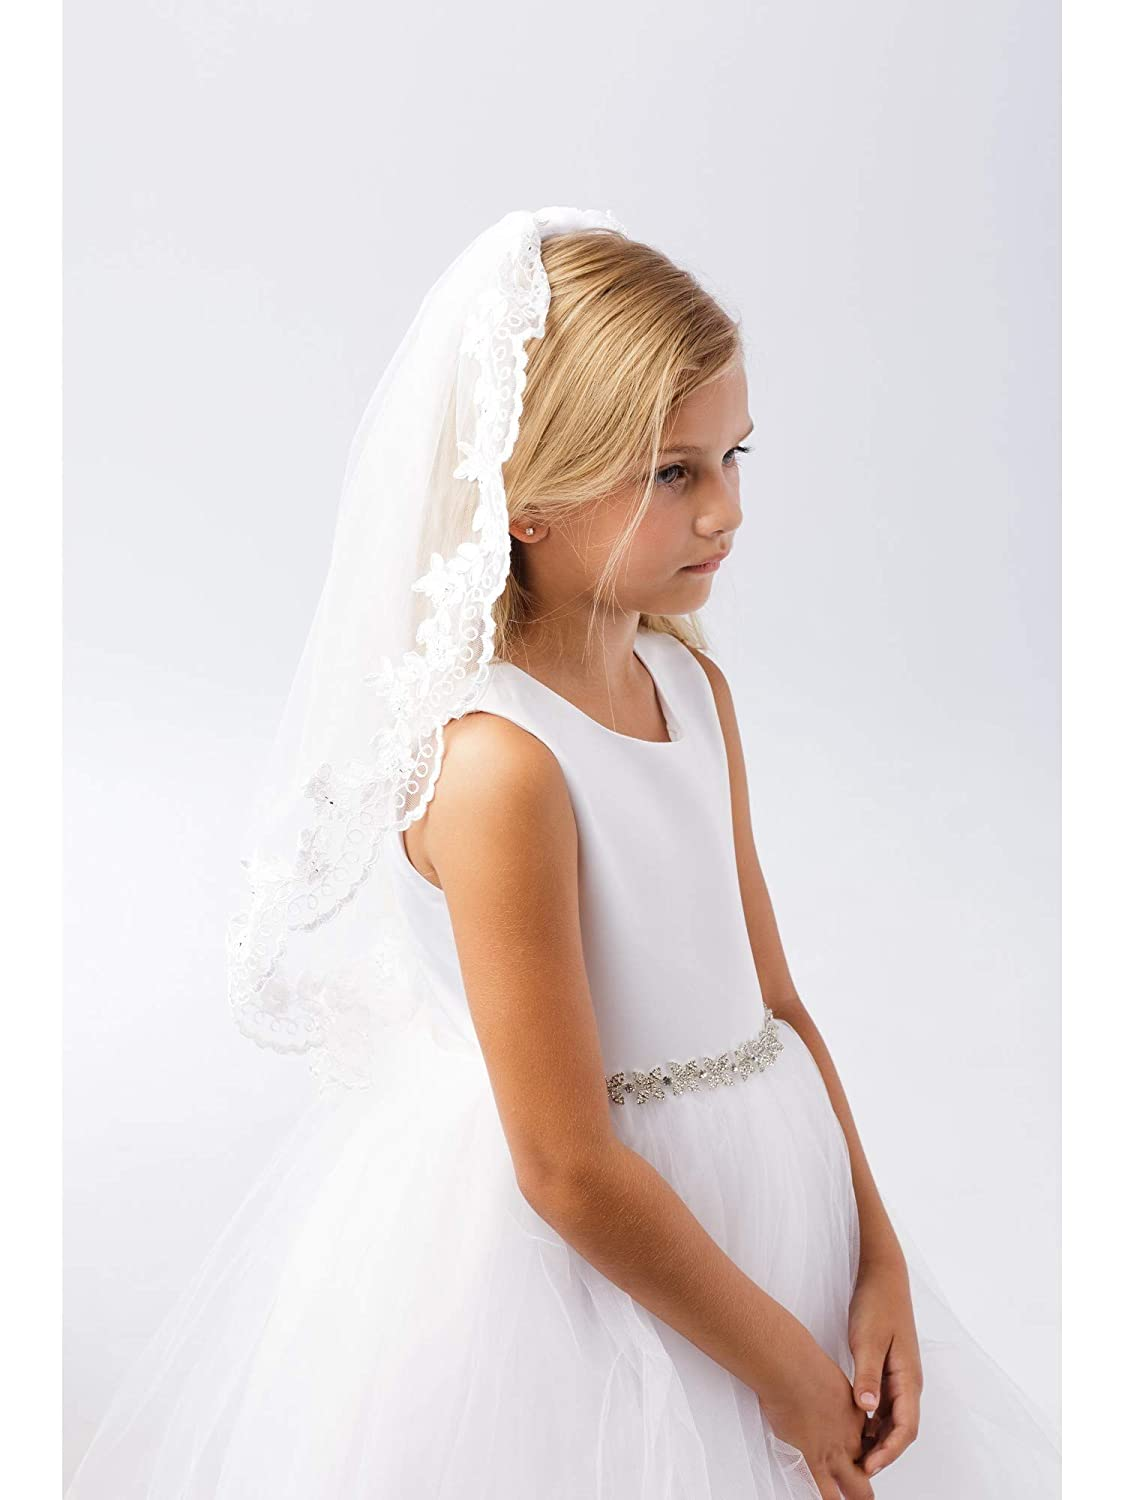 Girls White Wide Floral Lace Edge Single Layer Communion Flower Girl Veil Tip Top Kids